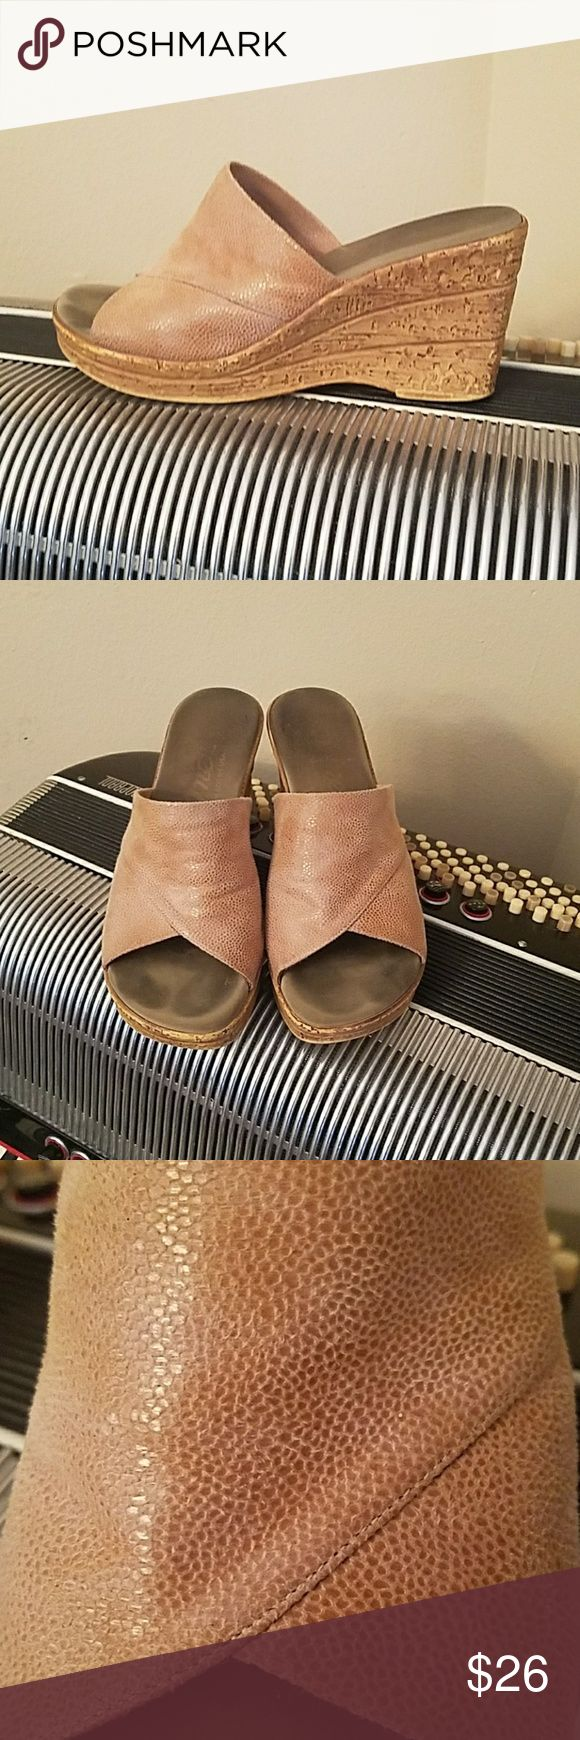 SUPER COMFORTABLE ONEX TAN FABRIC SLIP ON WEDGES SUPER COMFORTABLE ONEX TAN FABRIC SLIP ON WEDGES.  Worn a bunch but still in great condition.  Lots of life left.   Size 7 Onex Shoes Wedges